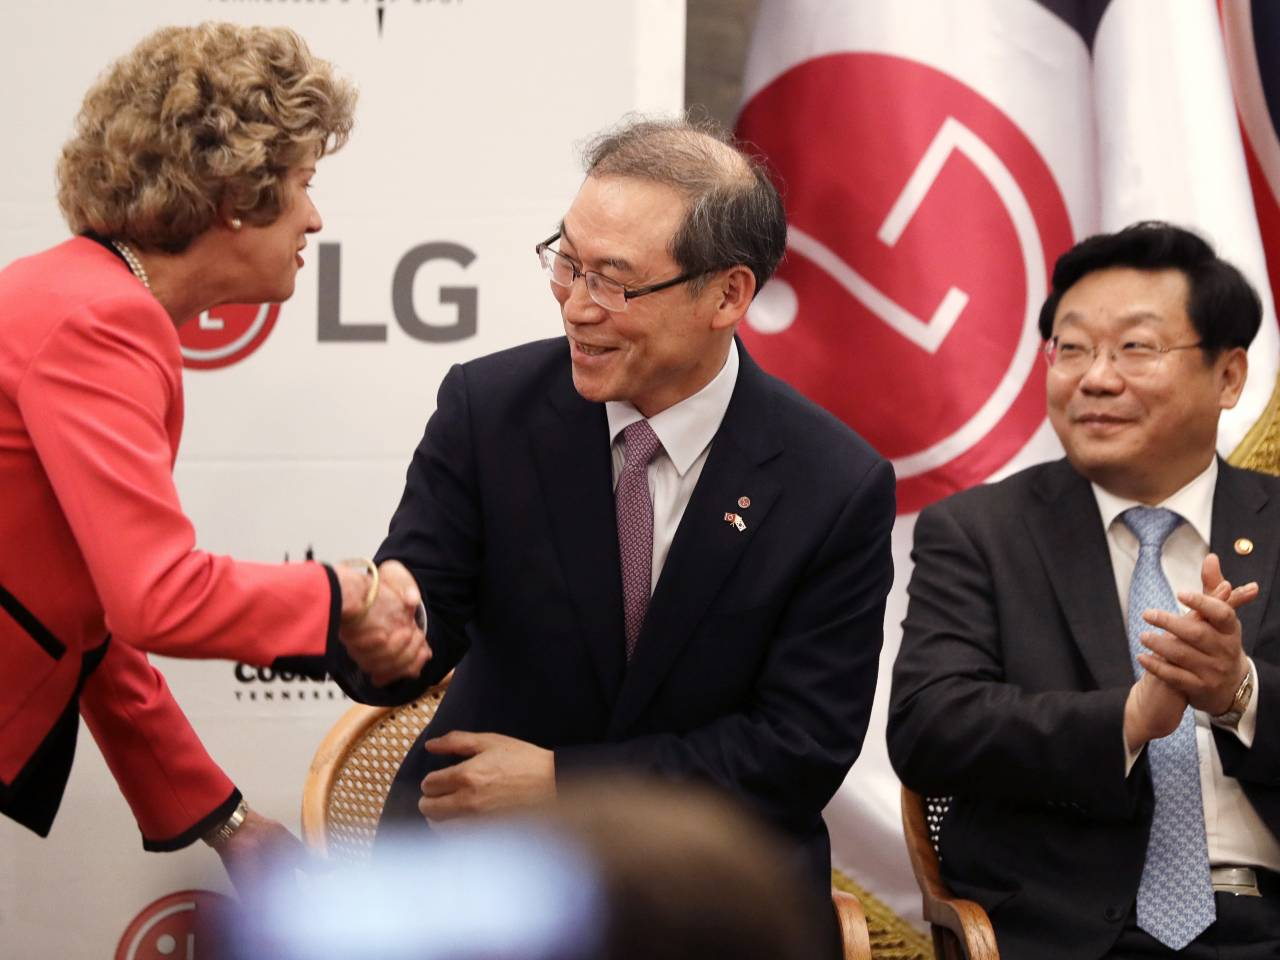 lg to build m plant in tennessee creating jobs com lg to build 250m plant in tennessee creating 600 jobs